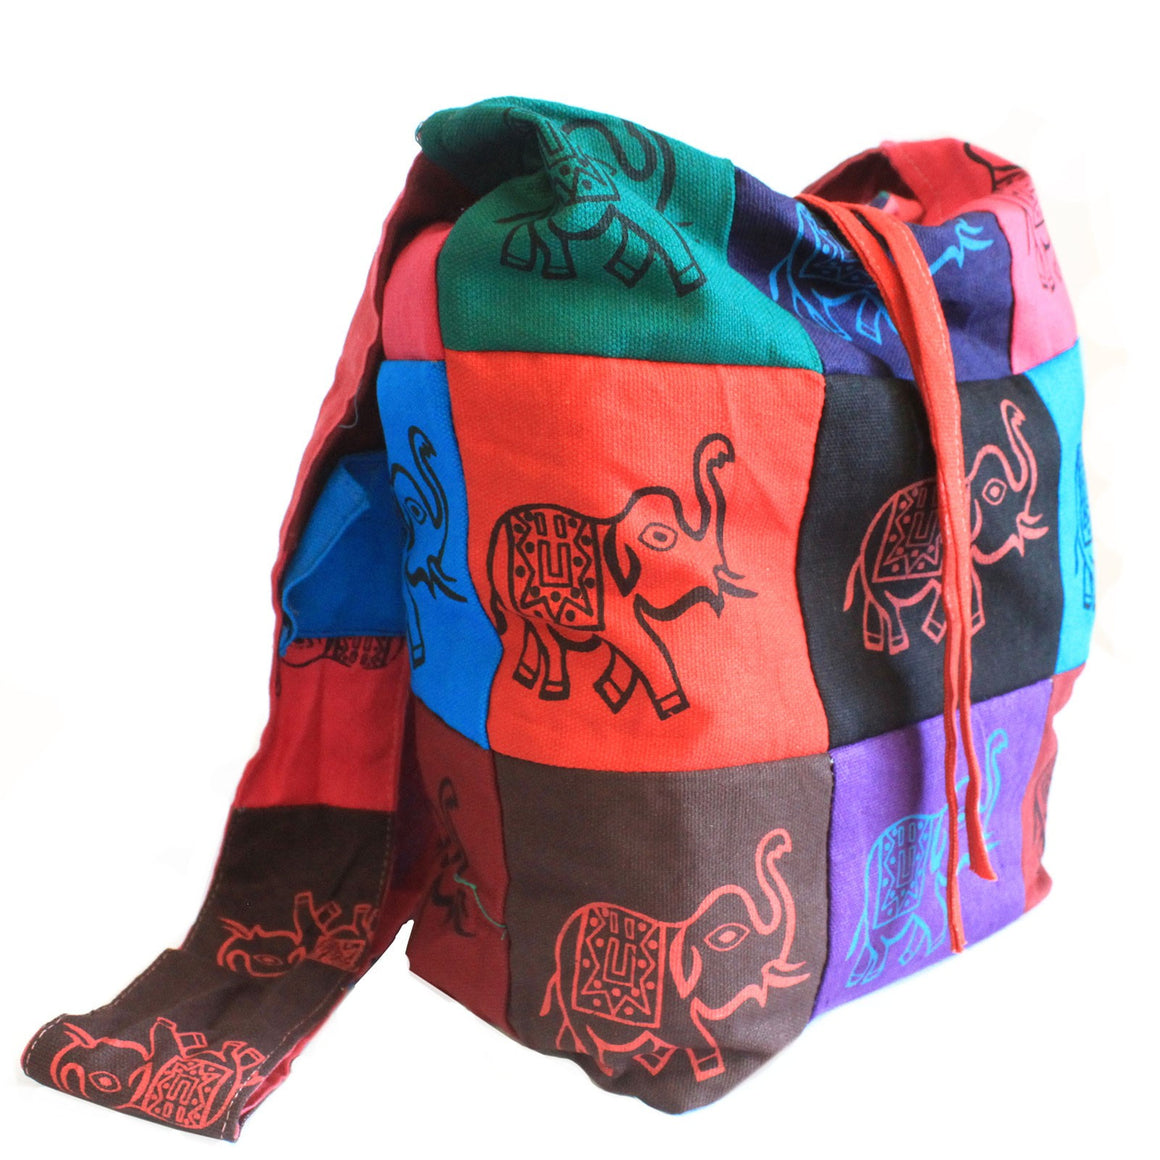 Bags, Cotton Patch Sling Bags, Elephant, Ethnic Bags, Gift, India, Indian